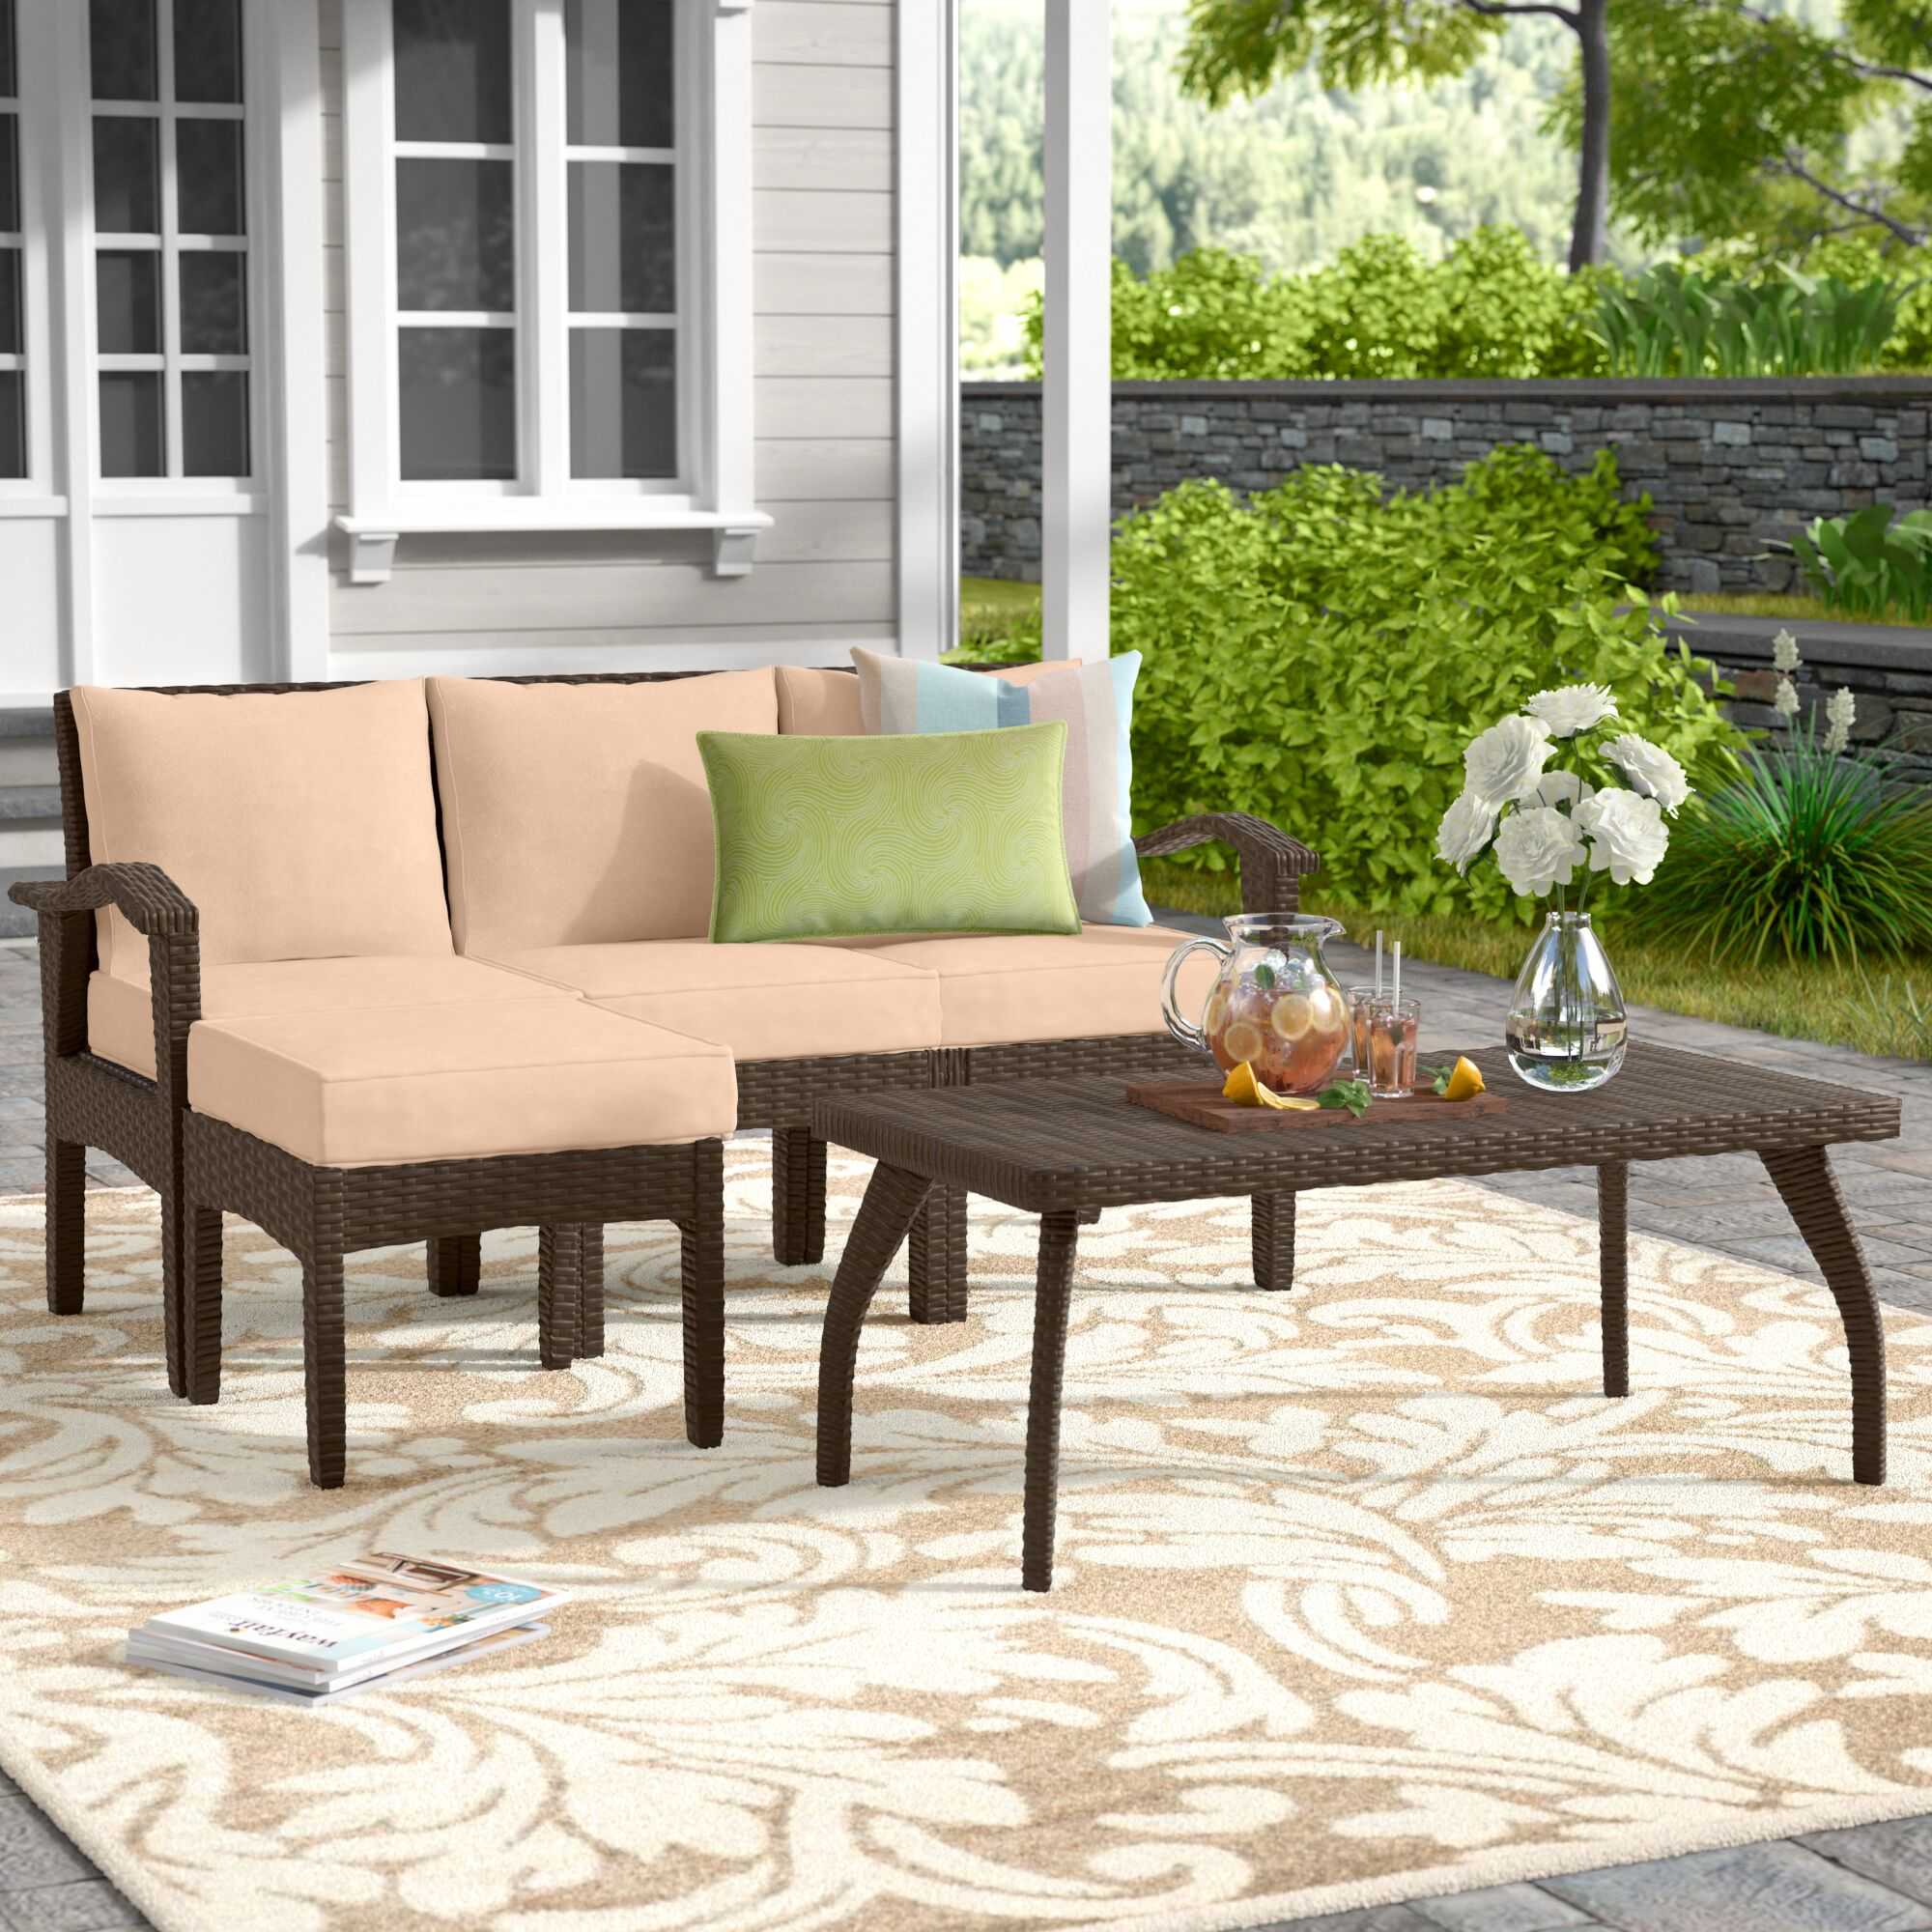 Arison 5 Piece Sectional Set with Cushions Fabric: Brown